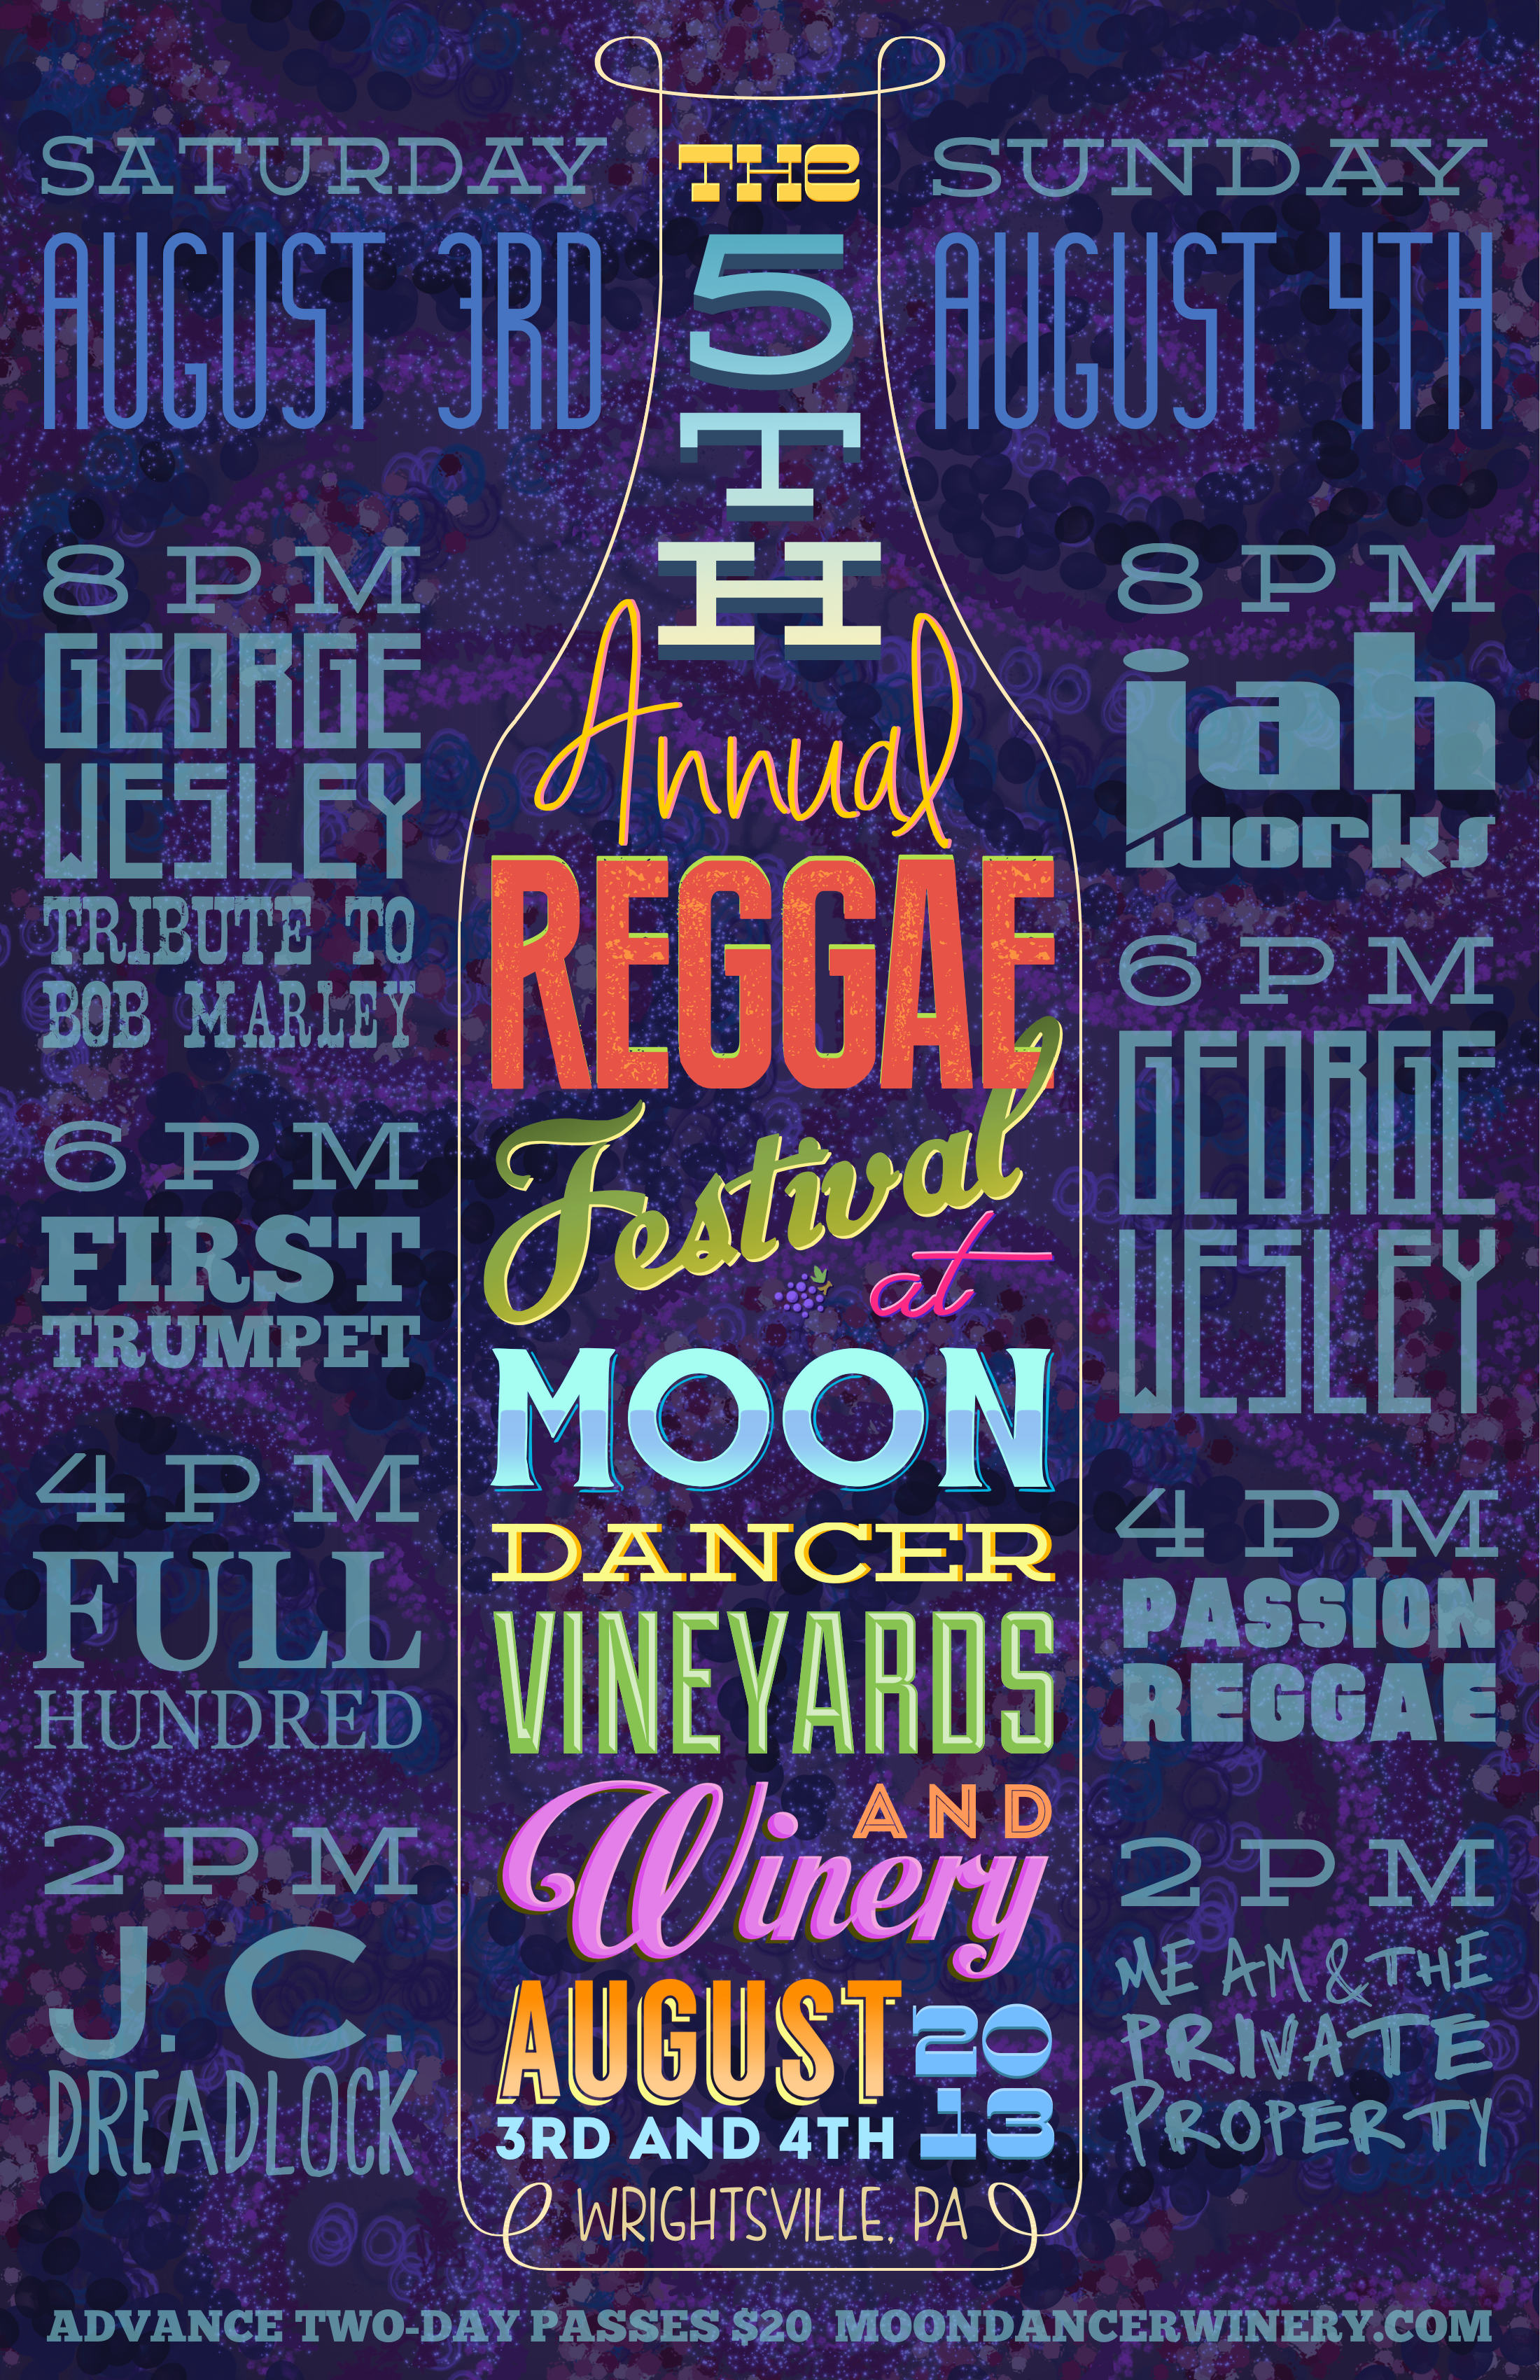 Reggae Festival @ Moon Dancer Winery by Corey Salzano